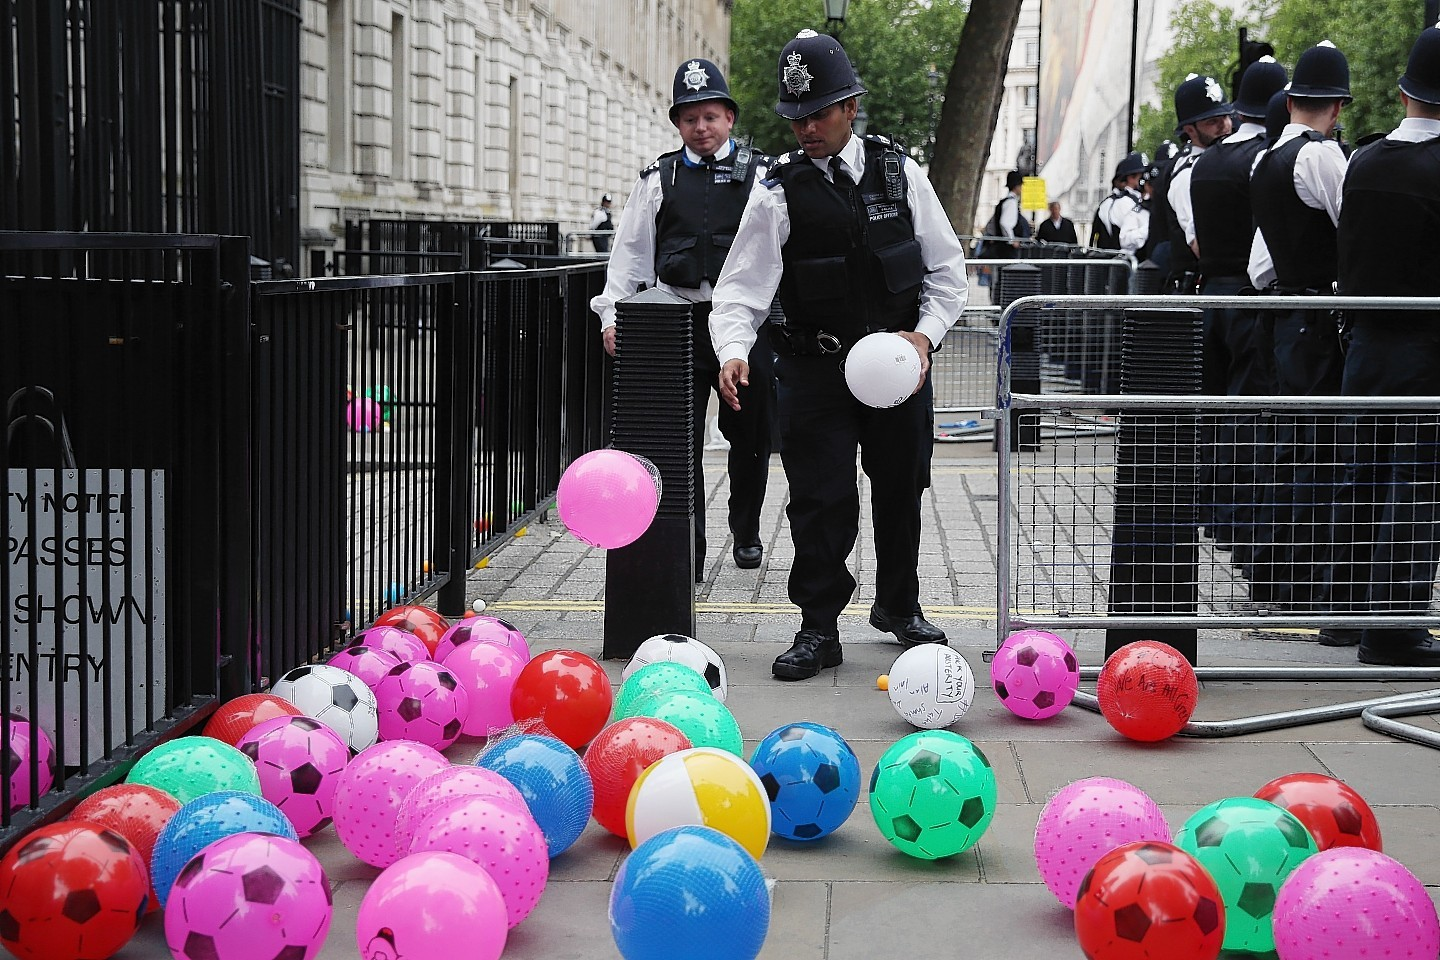 Anti austerity protesters throw balls towards Downing Street